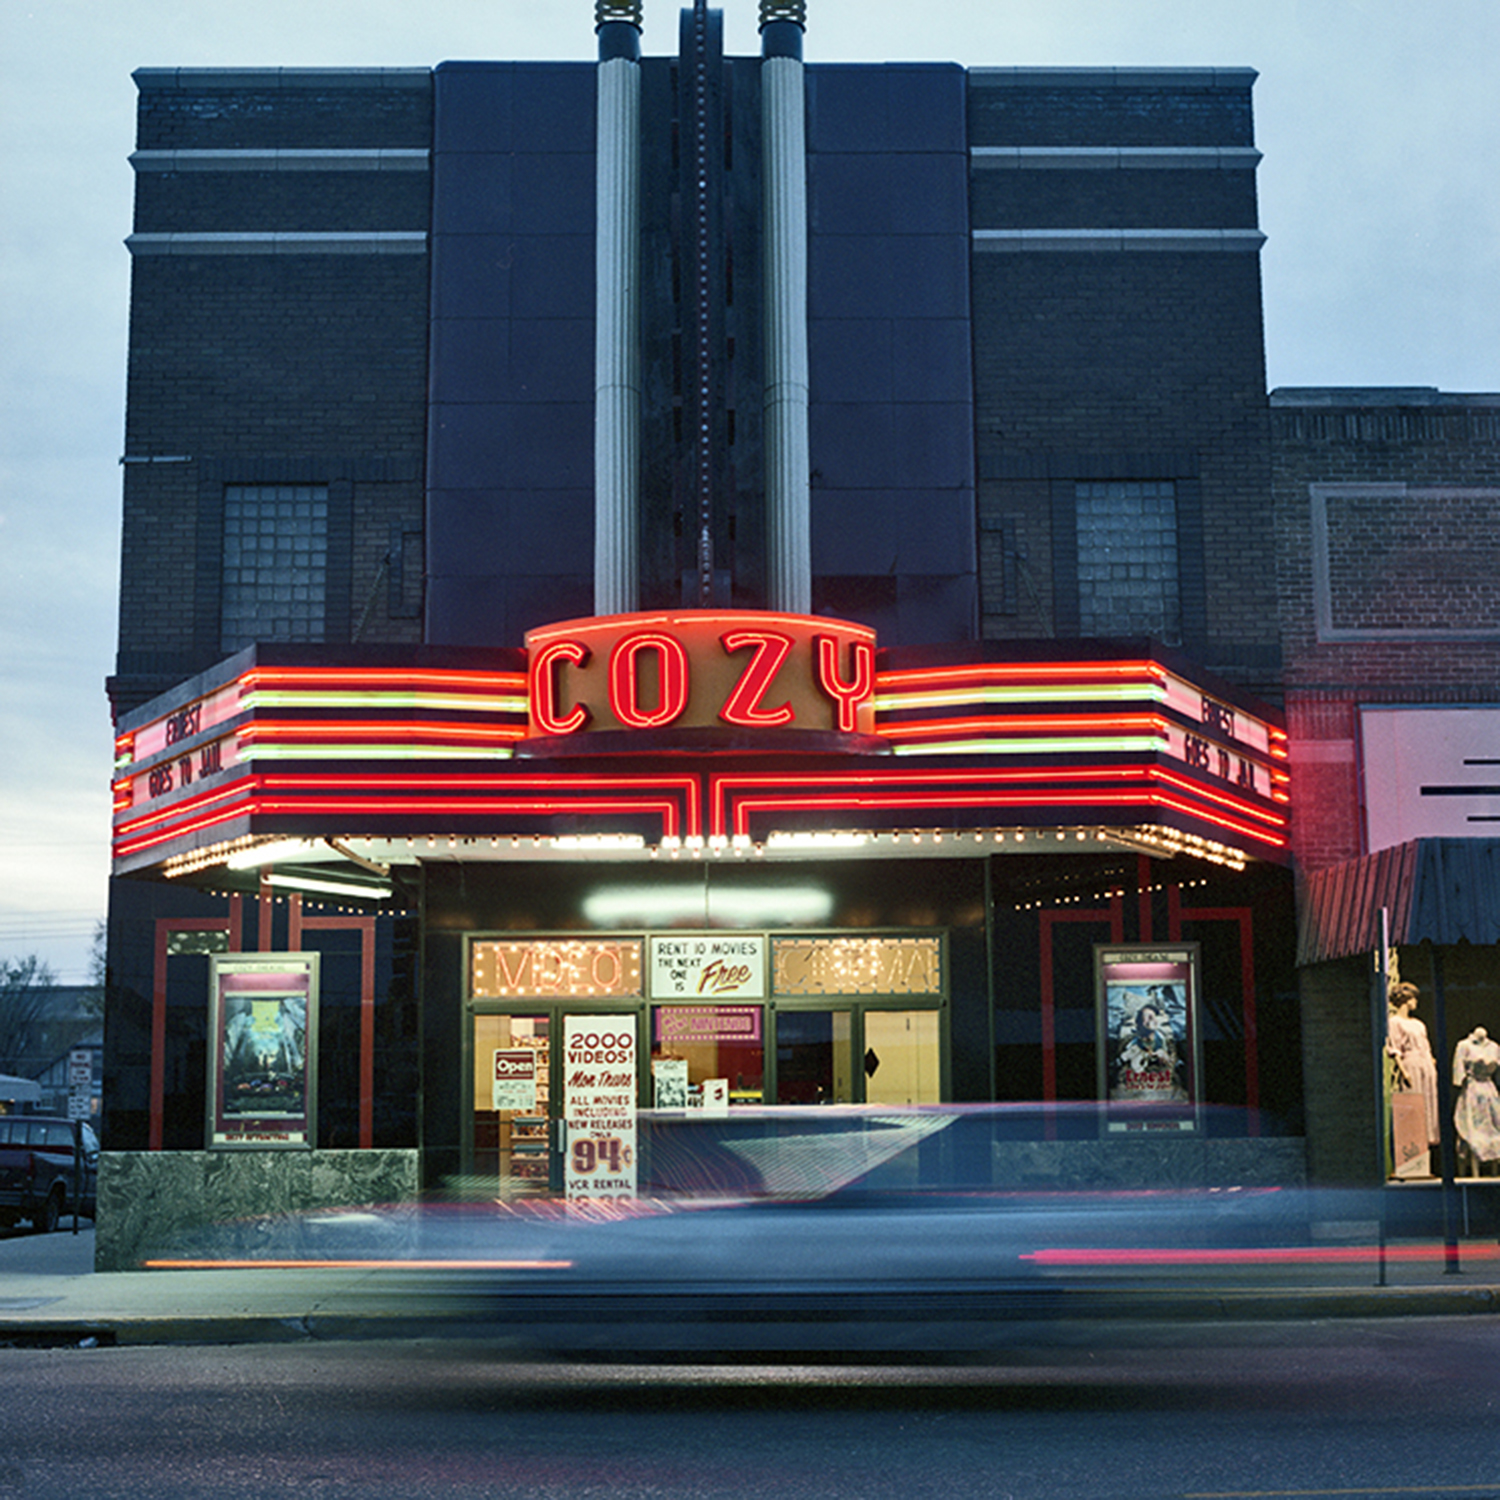 Cozy Theater, Wadena, Minnesota. May 1990. Art Deco theater in a town of 4,000. Built in 1914 with the neon marquee added in 1938; in continuous operation since.